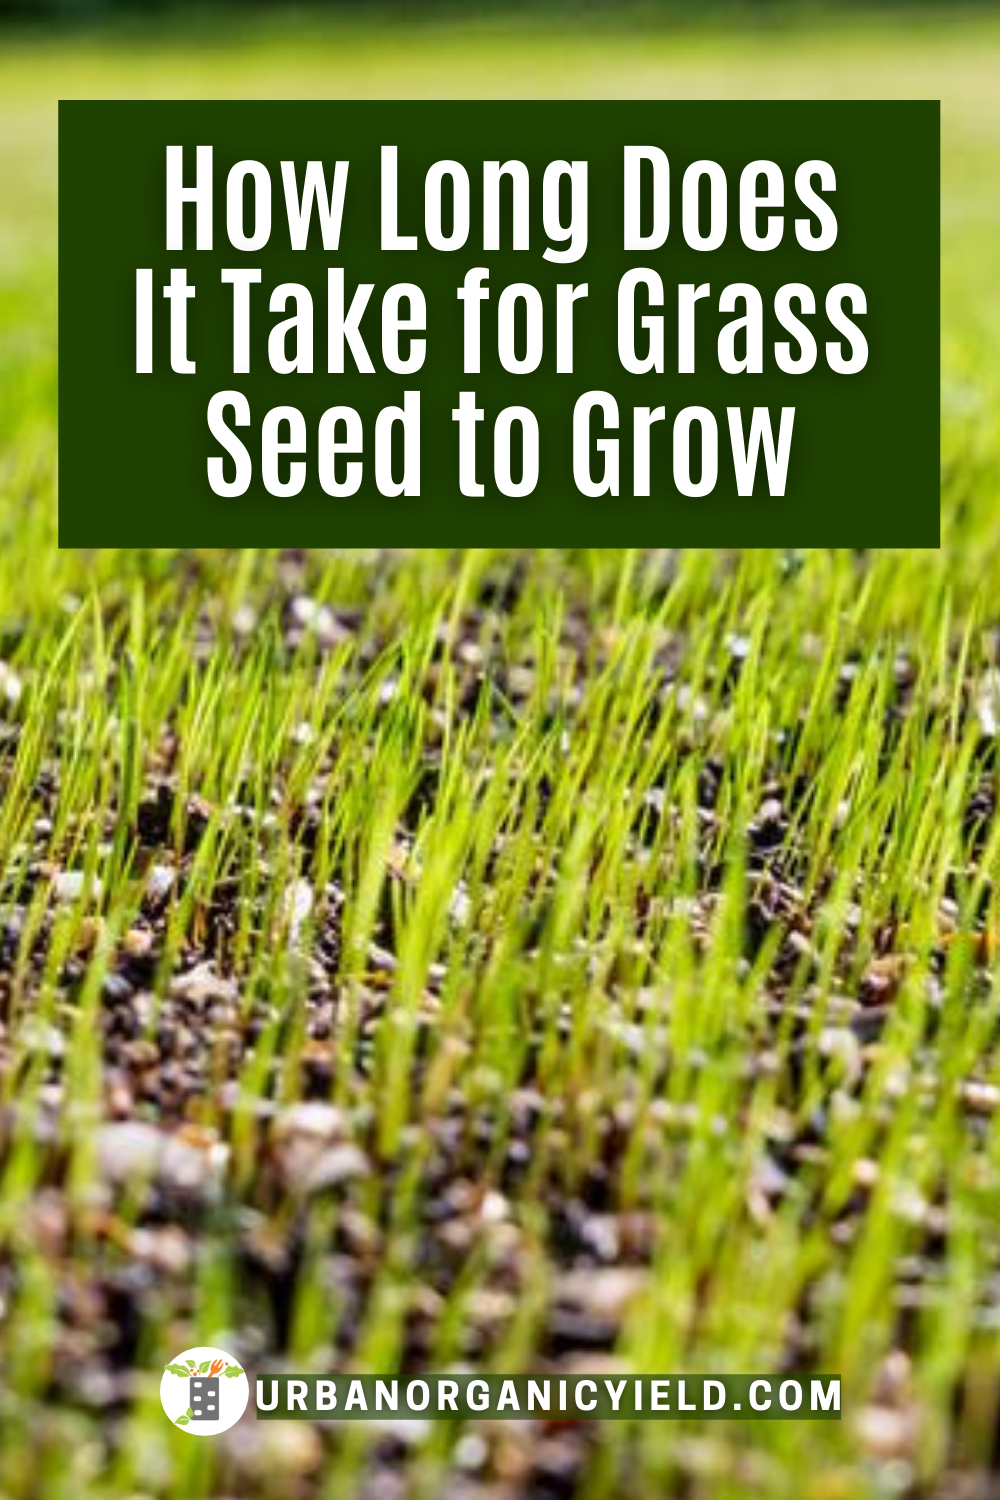 Grass Seed Tips How To Grow Fast Planting Grass Grass Seed Overseeding Lawn